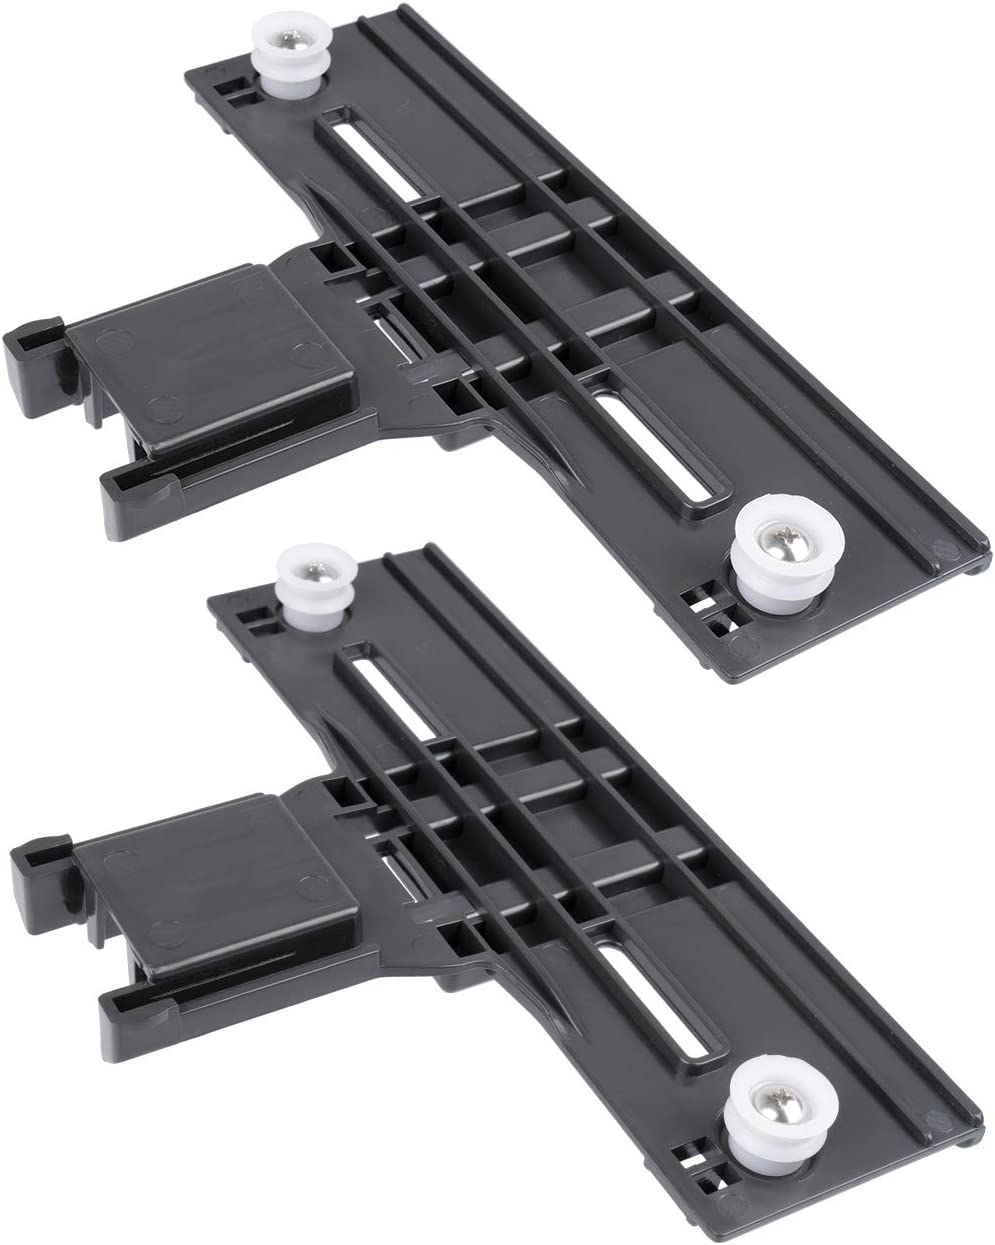 Hosom Dishwasher Top Rack Parts Compatible with Whirlpool,Kenmore Elite Dishwasher Top Rack Adjuster Kit,W10350376 Replacement for Kitchenaid Dishwasher Upper Rack Parts (Set of 2)